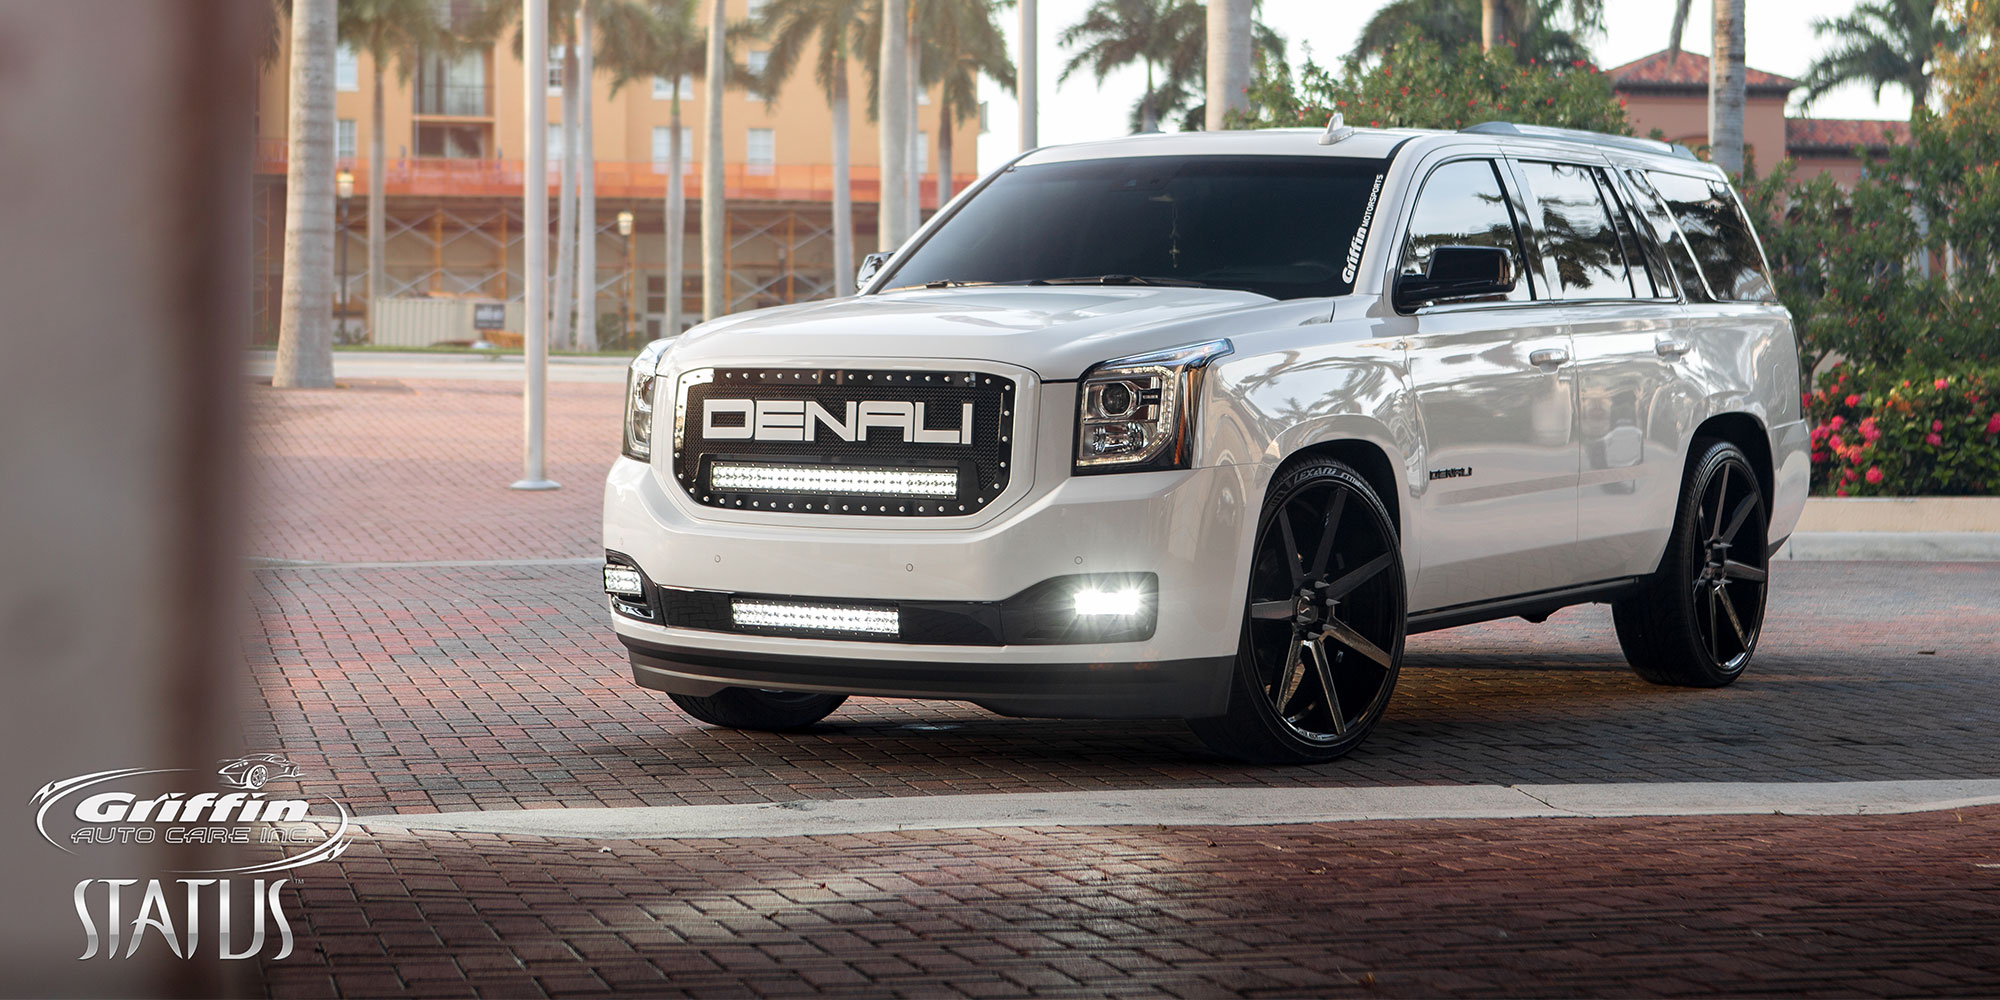 Gmc Yukon S838 Journey Gallery Perfection Wheels